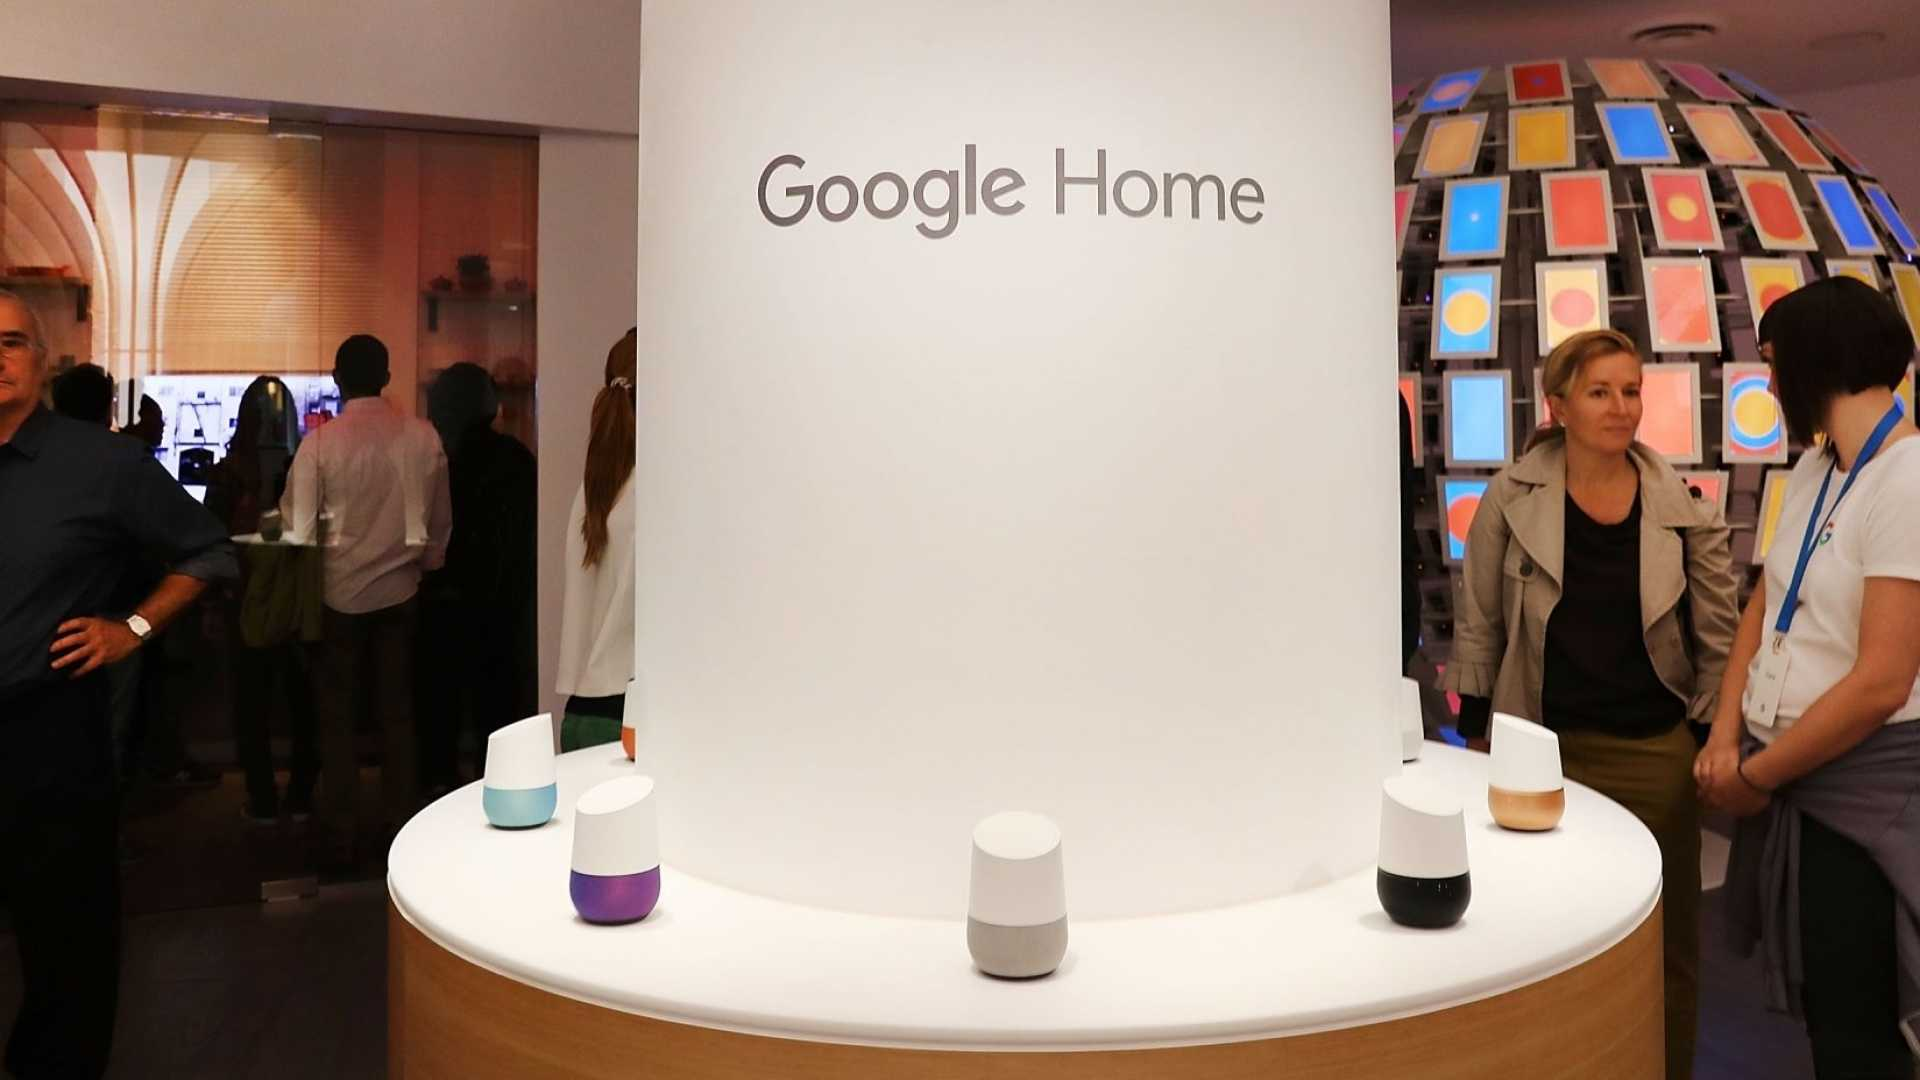 People visit the Google pop-up shop in the SoHo neighborhood on October 20, 2016 in New York City.